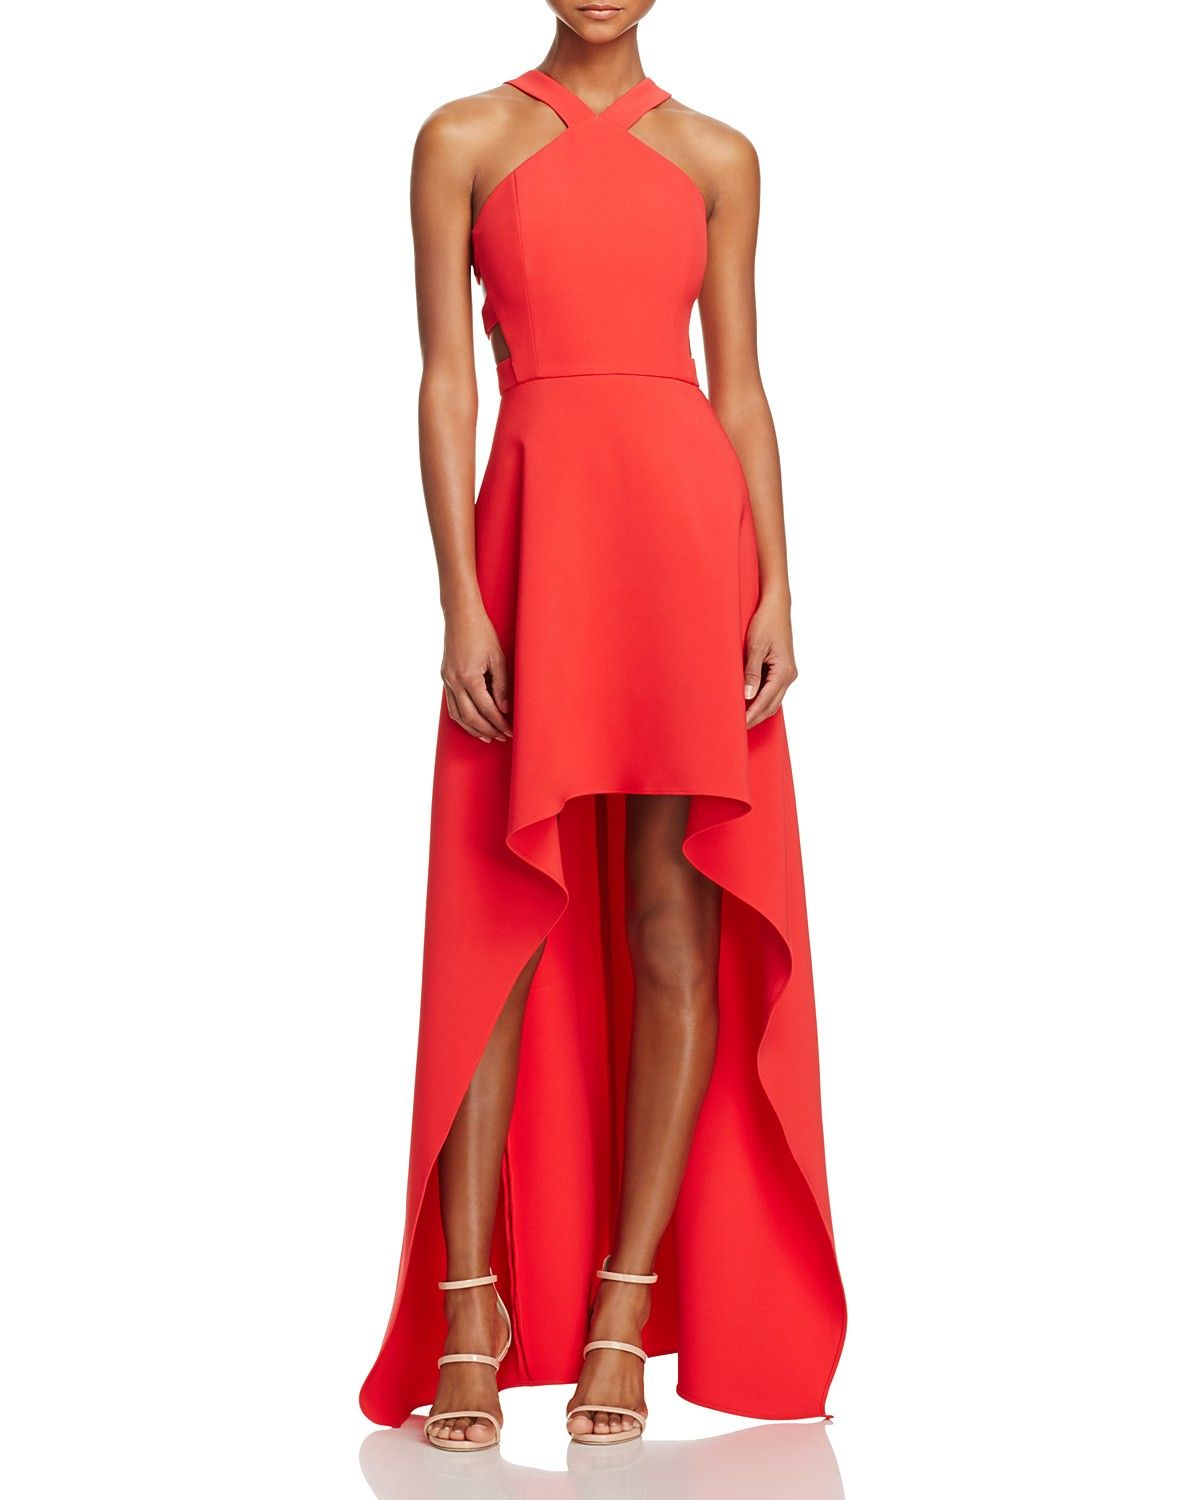 Bcbgmaxazria Cutout High Low Gown 100 Bloomingdale S Exclusive Best Prom Dresses Gowns Really Cute Outfits [ 1500 x 1200 Pixel ]